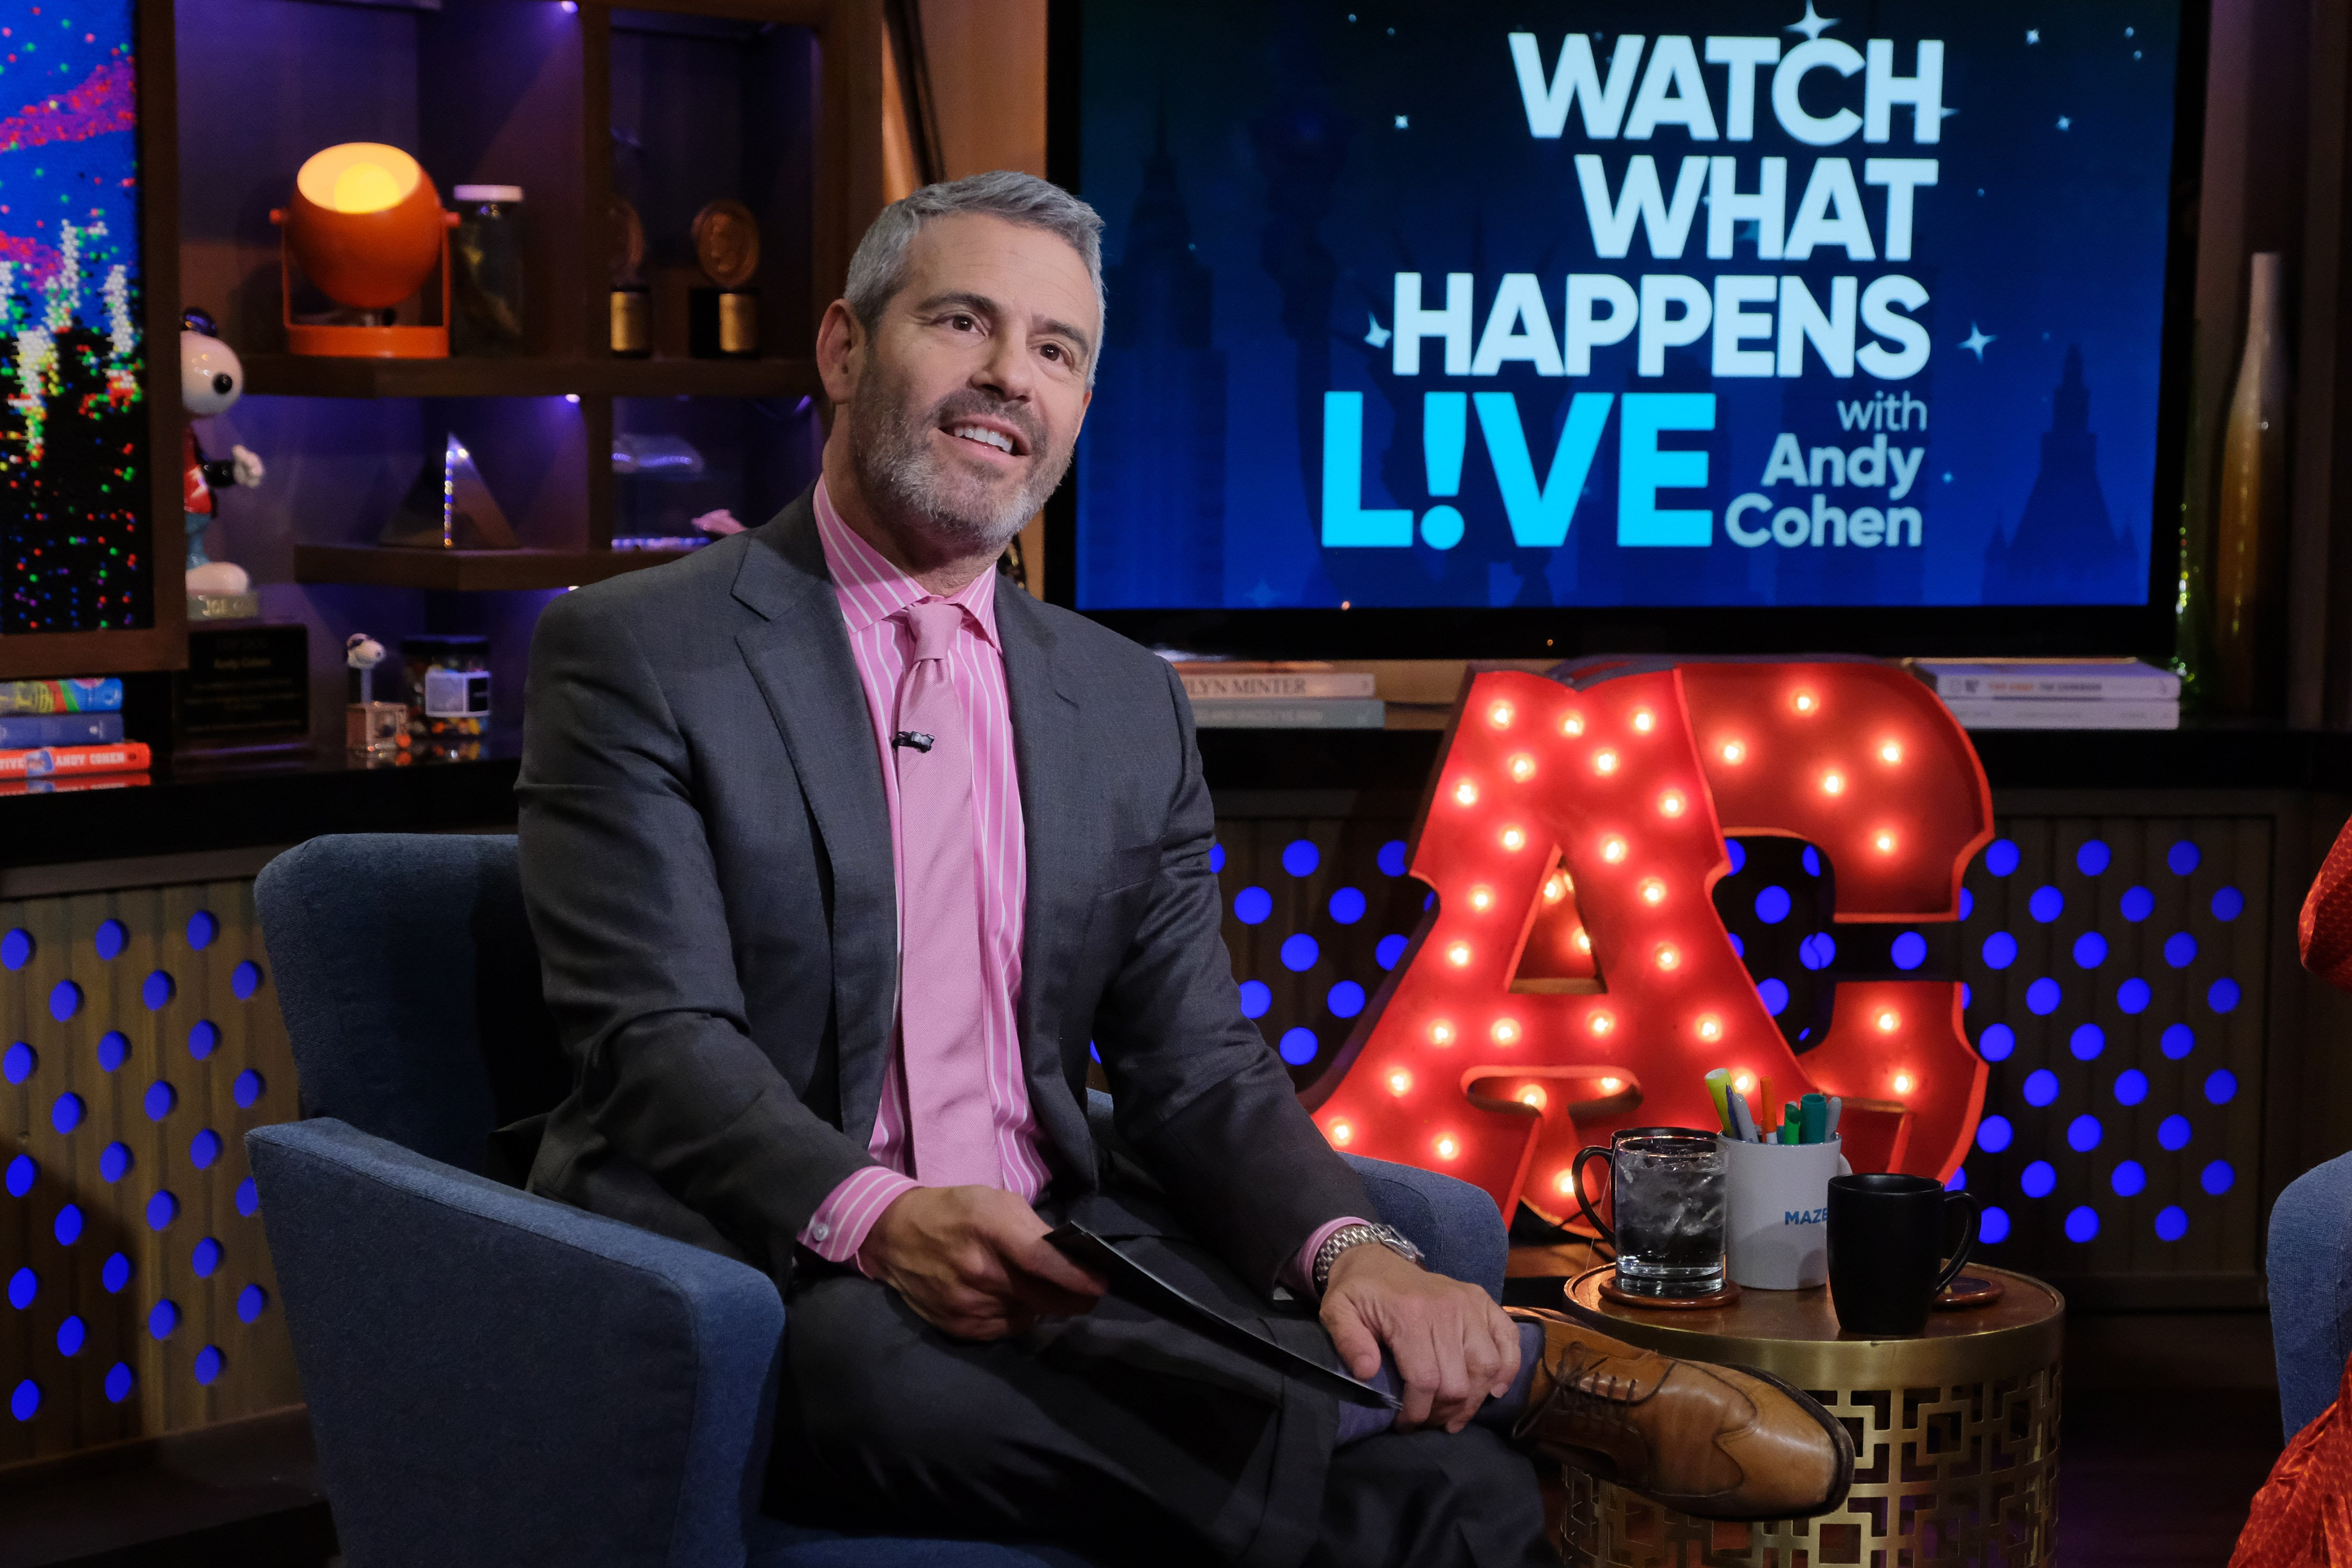 """Andy Cohen on set for his show """"Watch What Happens Live."""" 